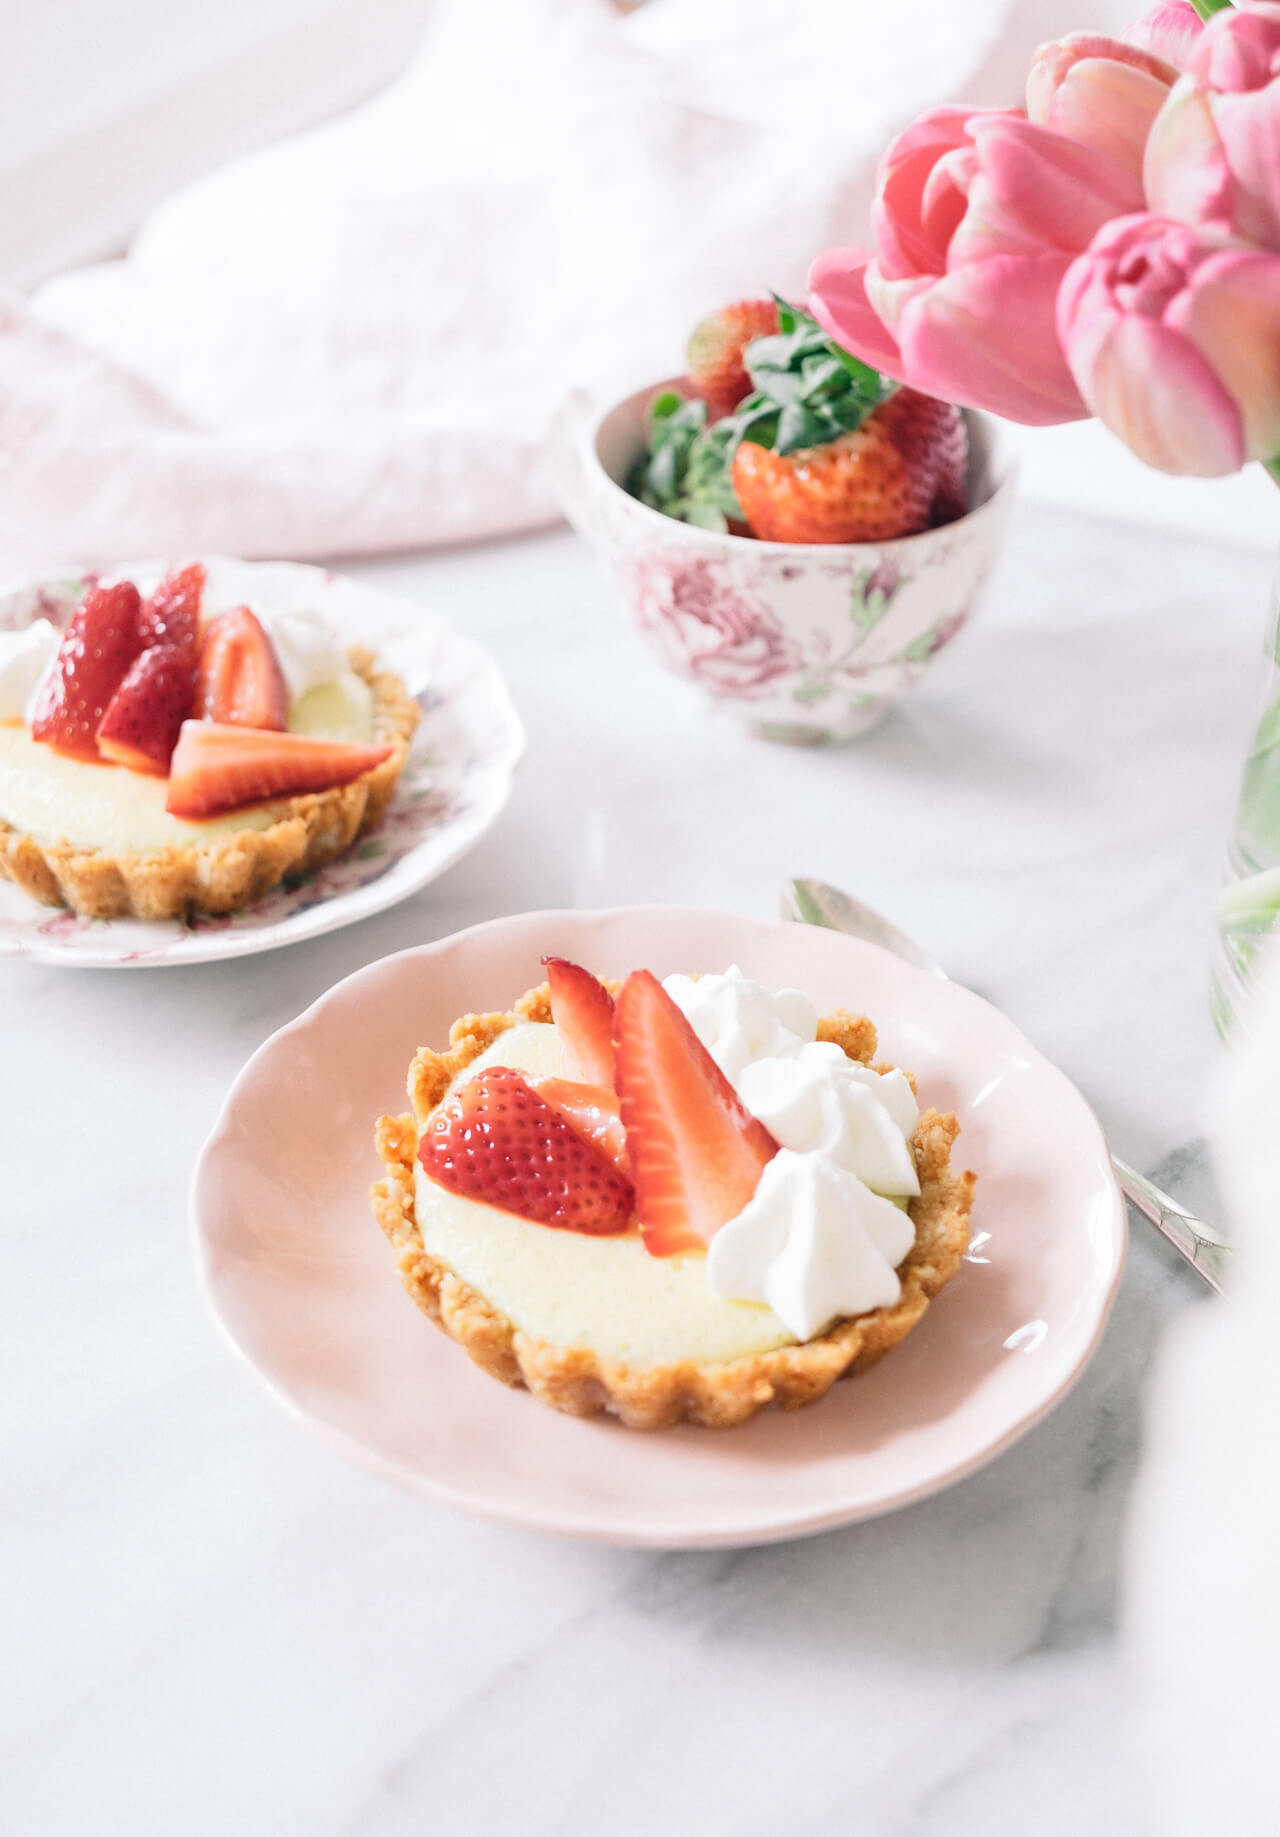 mini key lime tart recipe - so delicious and perfect for mother's day!